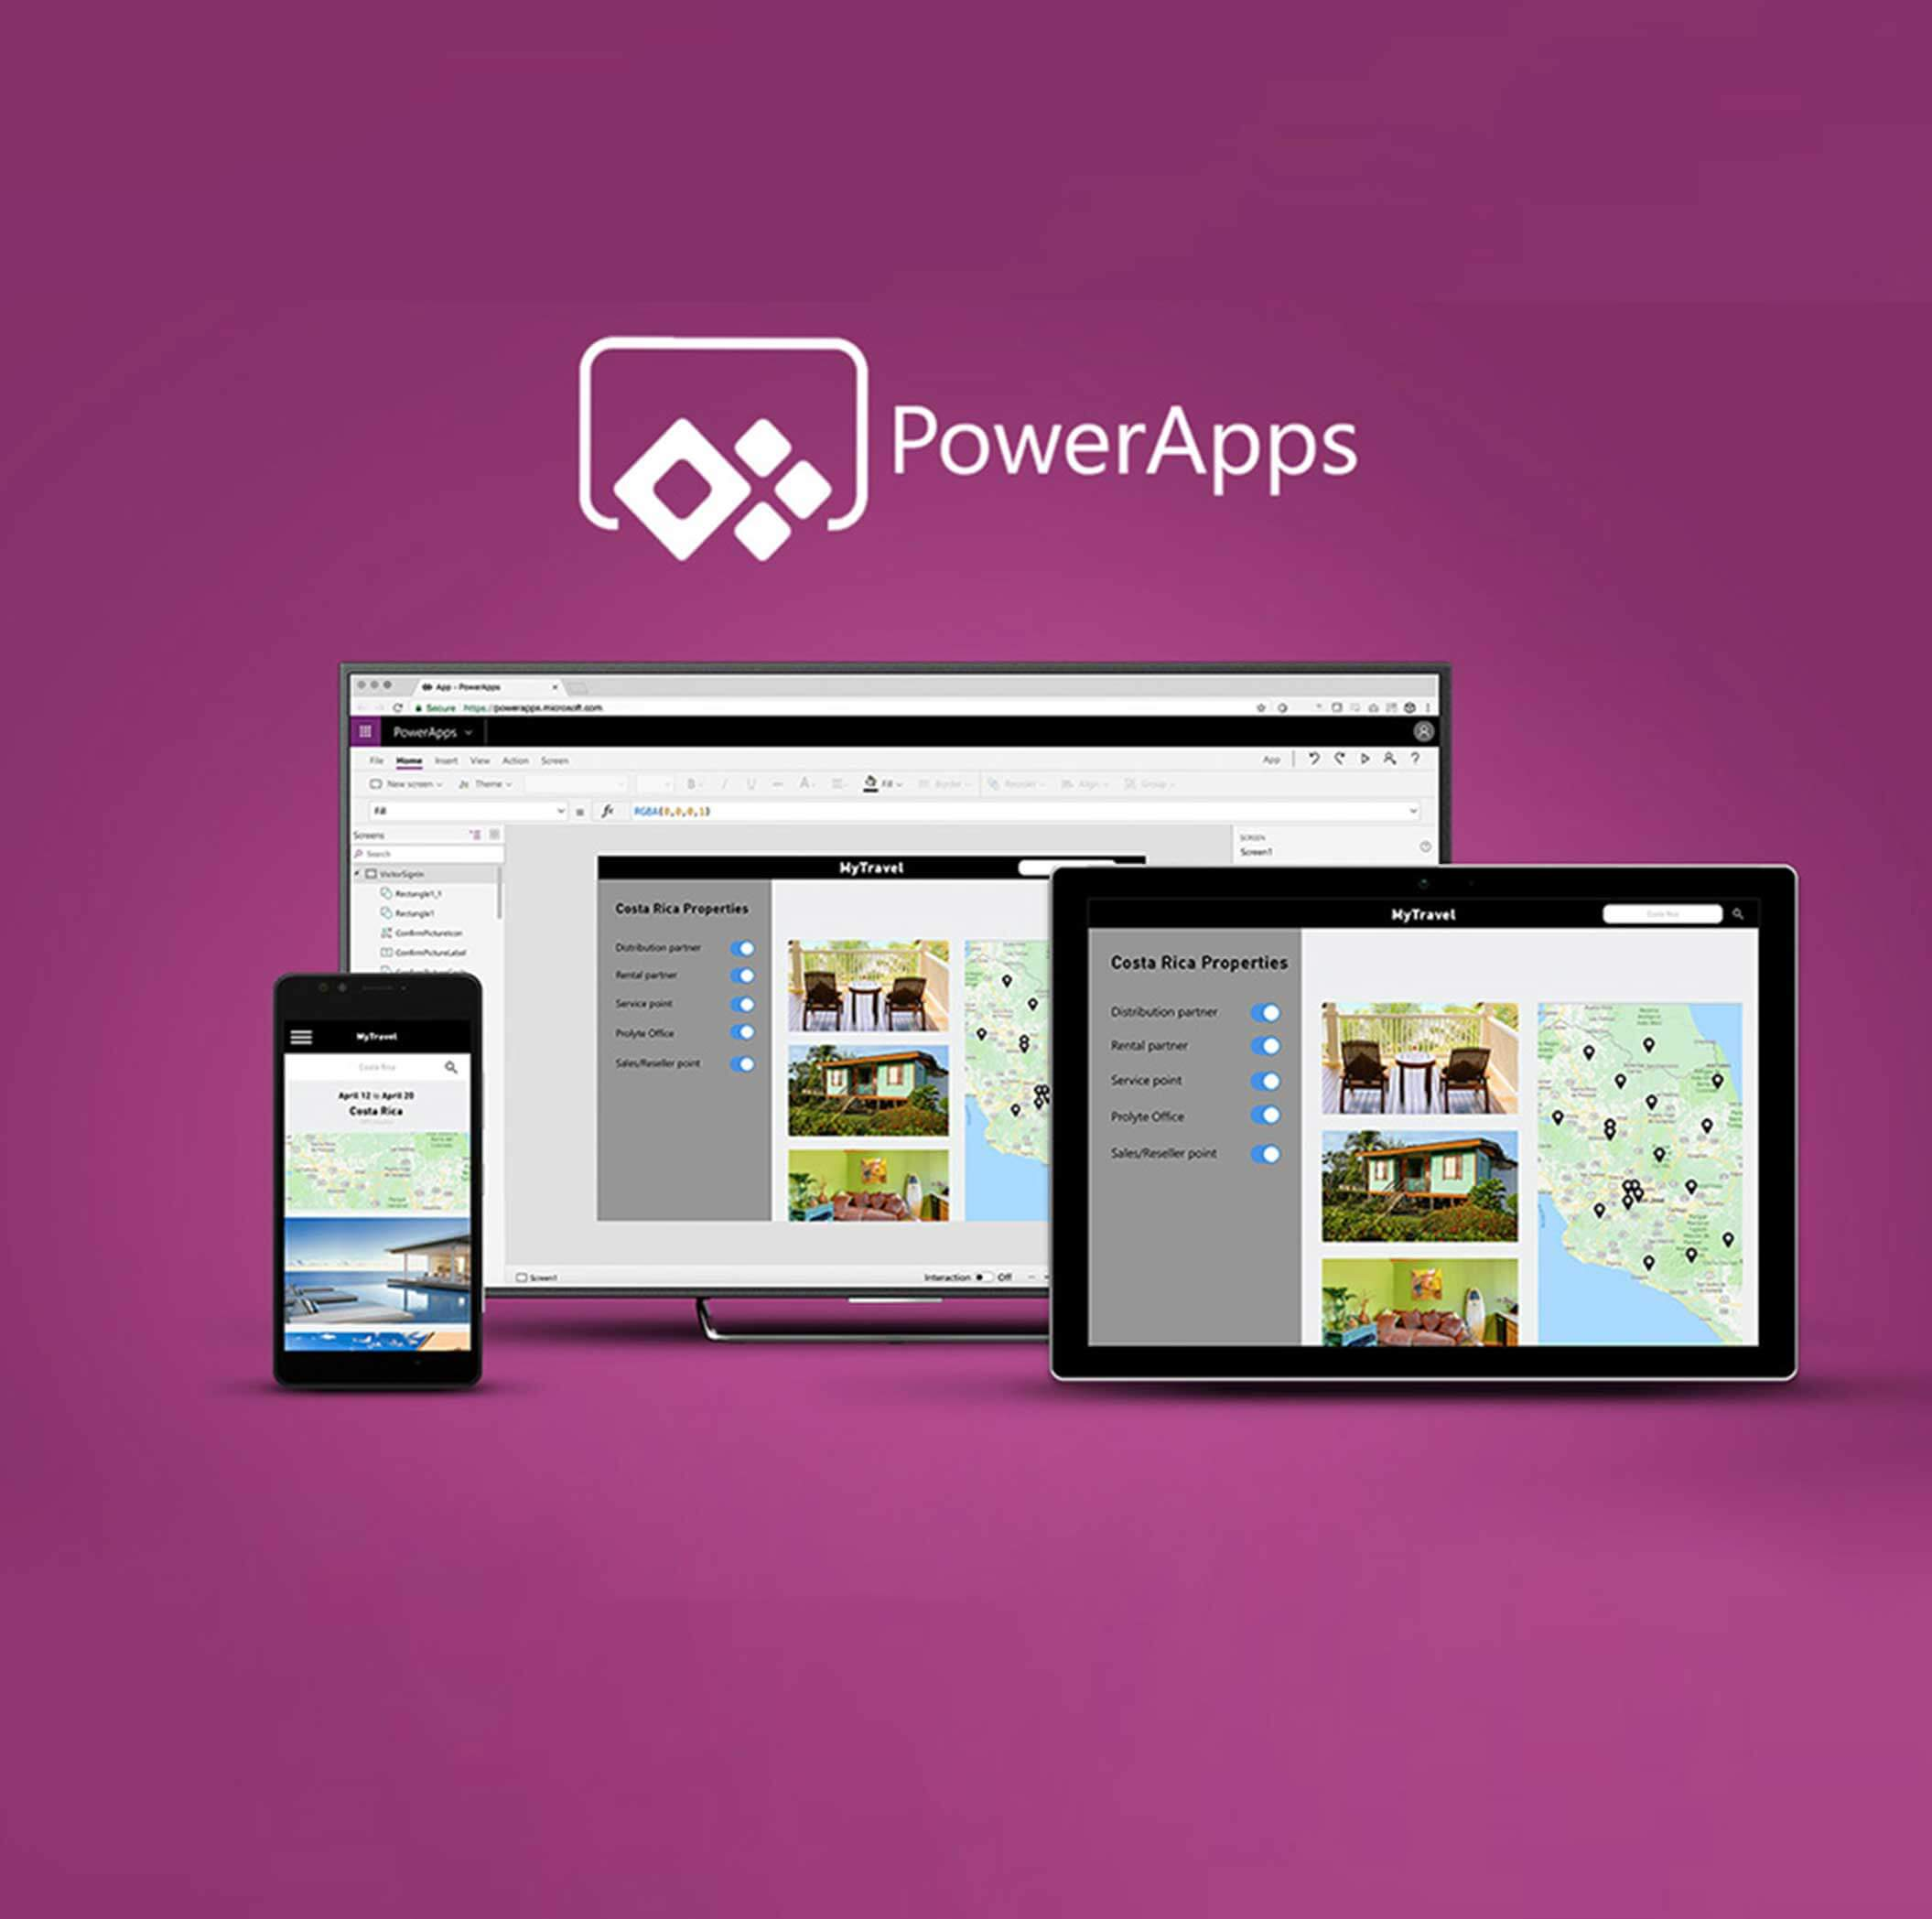 microsoft powerapps consulting